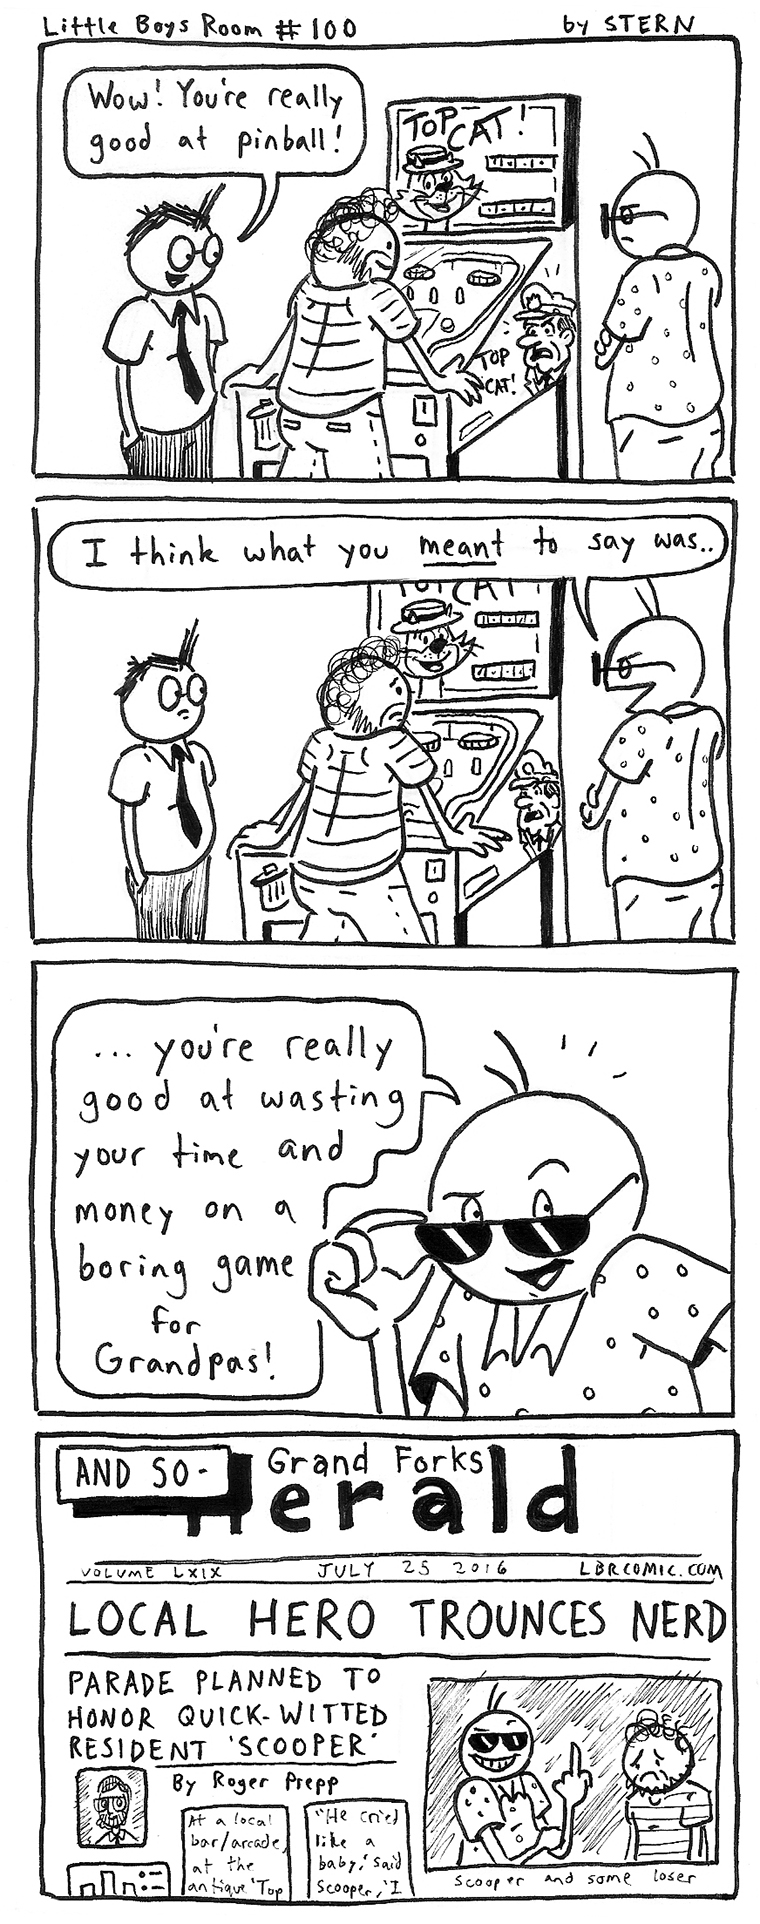 Why don't you do something more constructive, like draw webcomics?